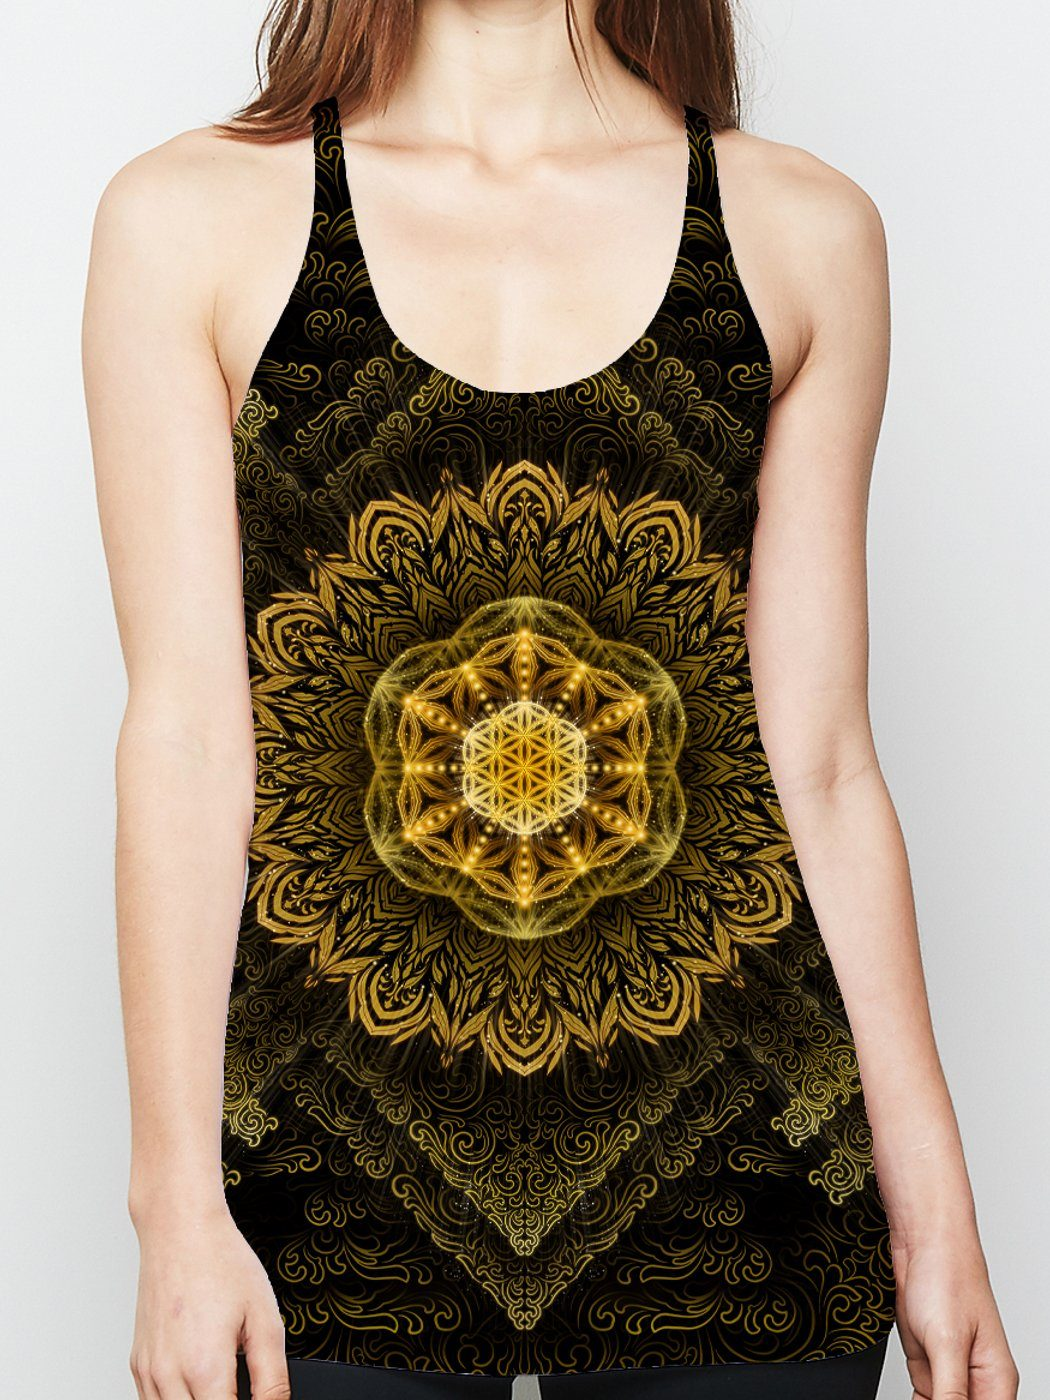 Tibetan Mantra Racerback Tank Top Tank Tops Electro Threads